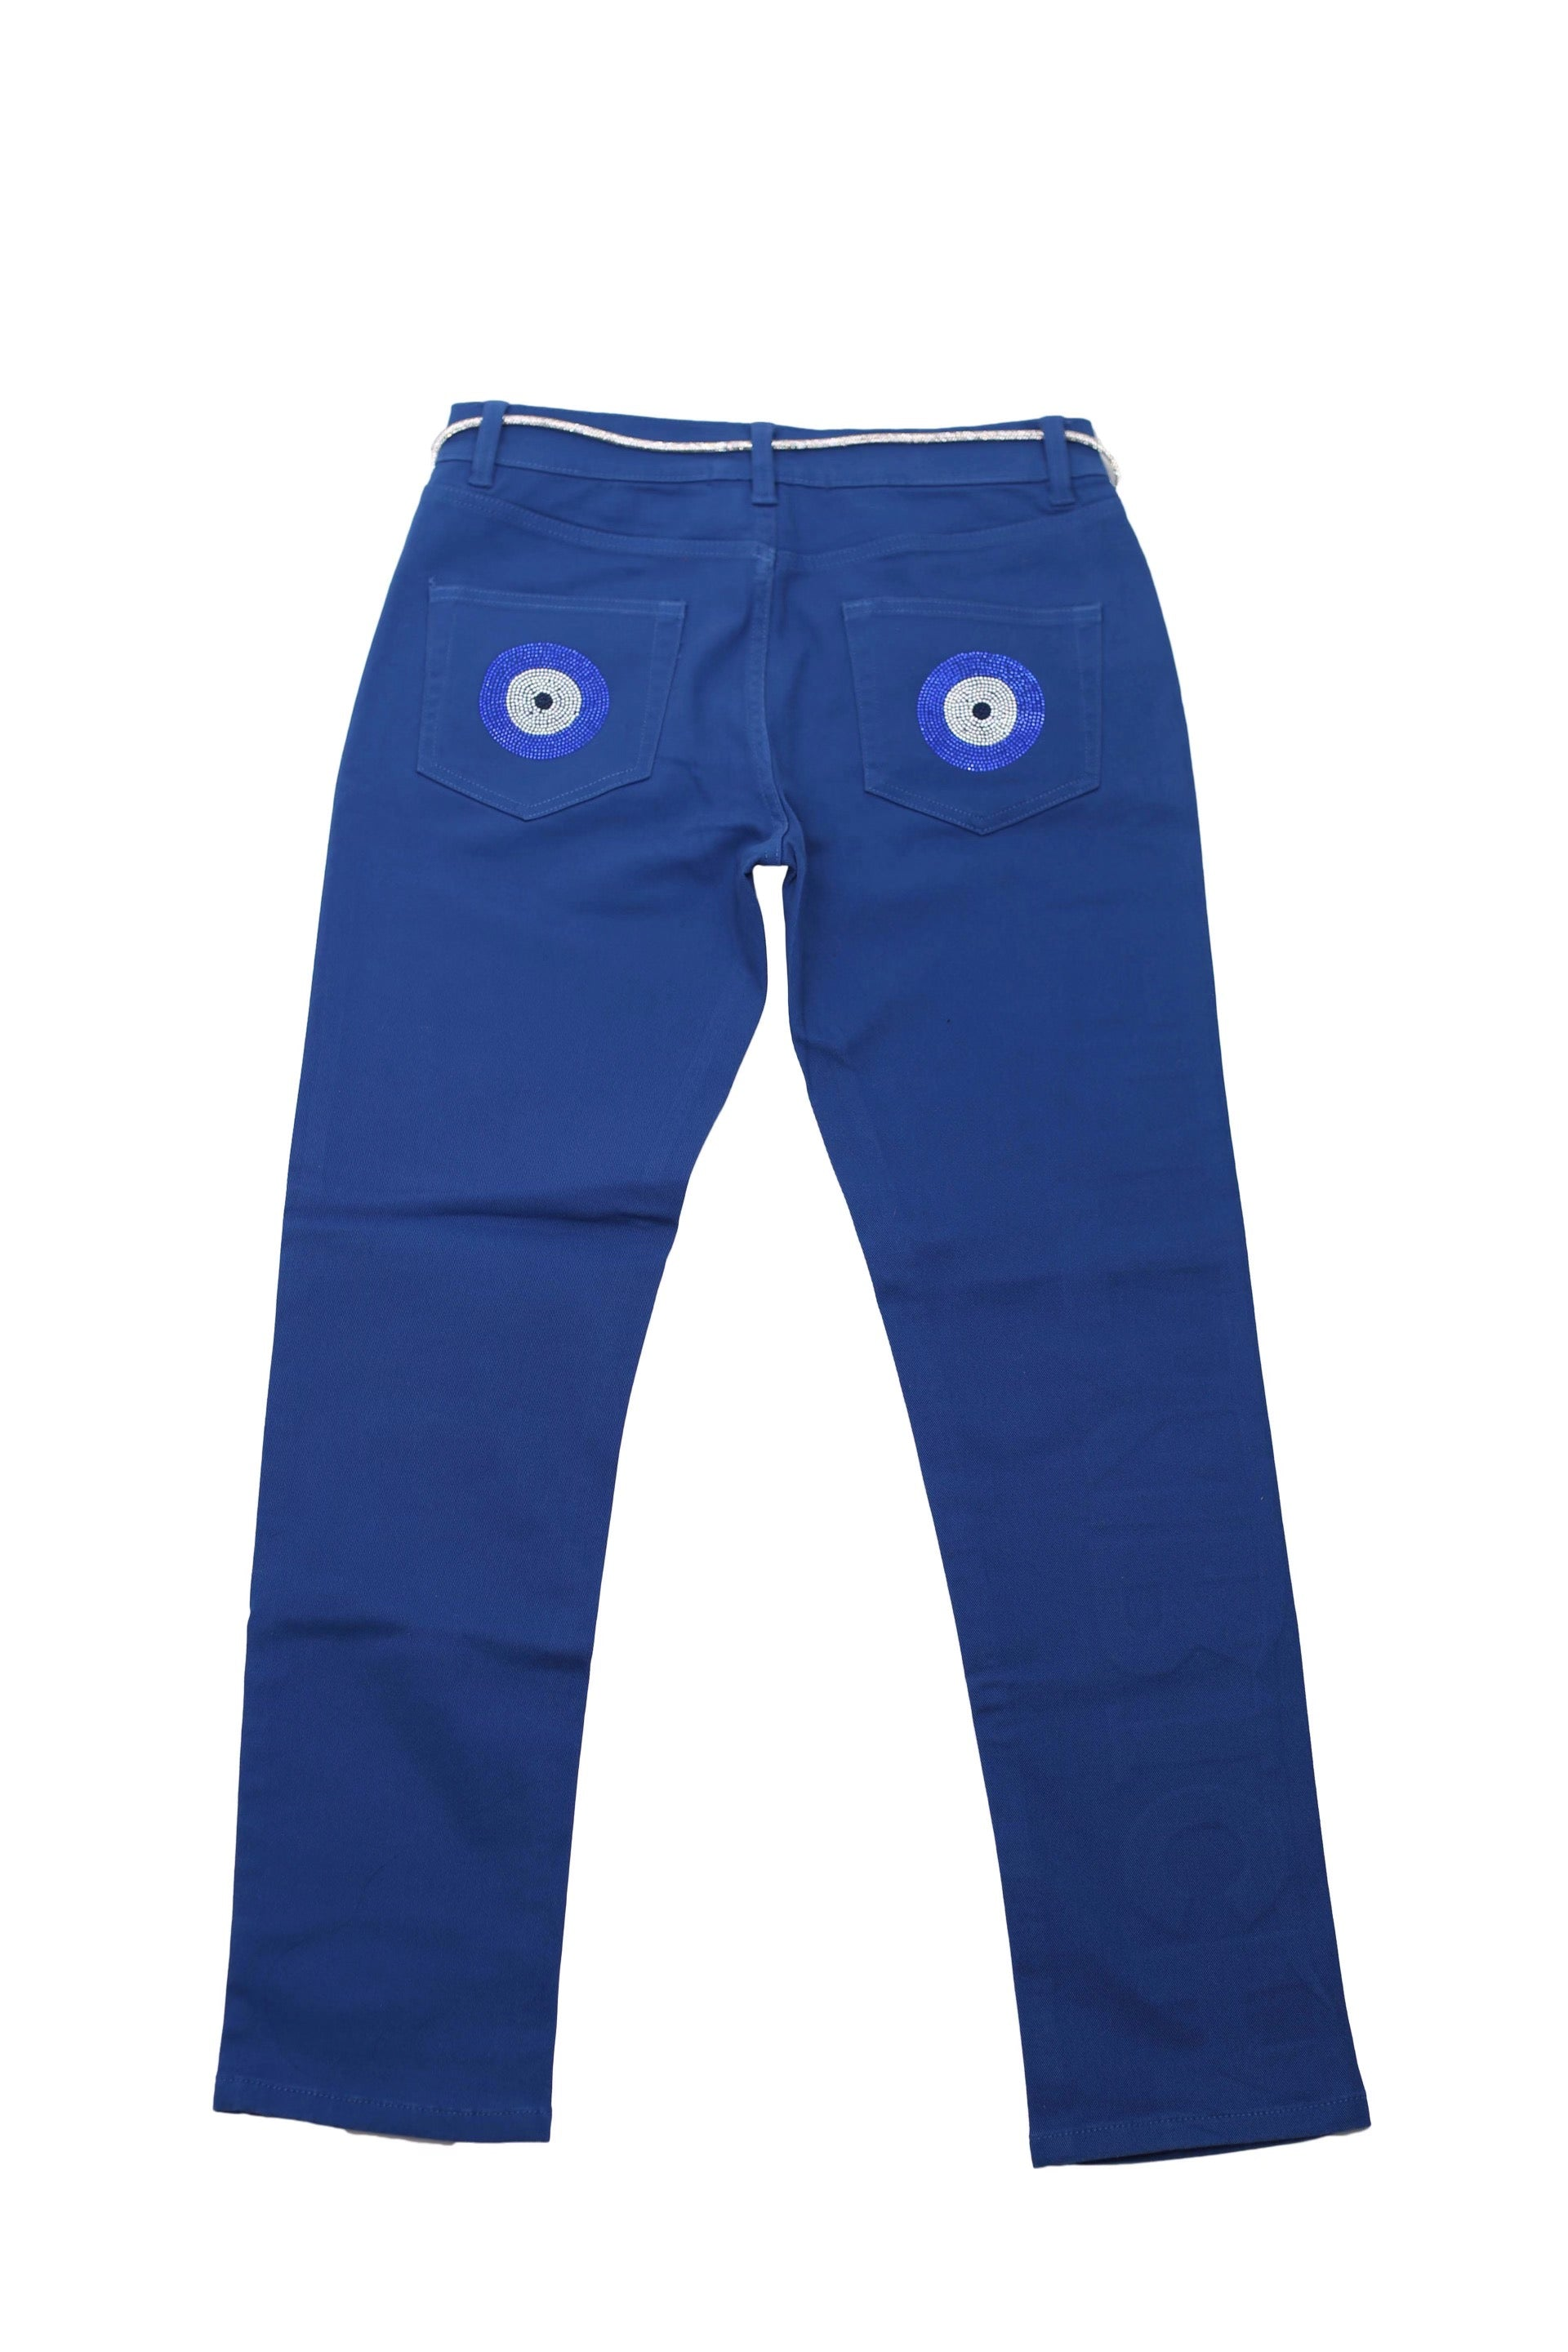 VVS Pants in Red & Blue